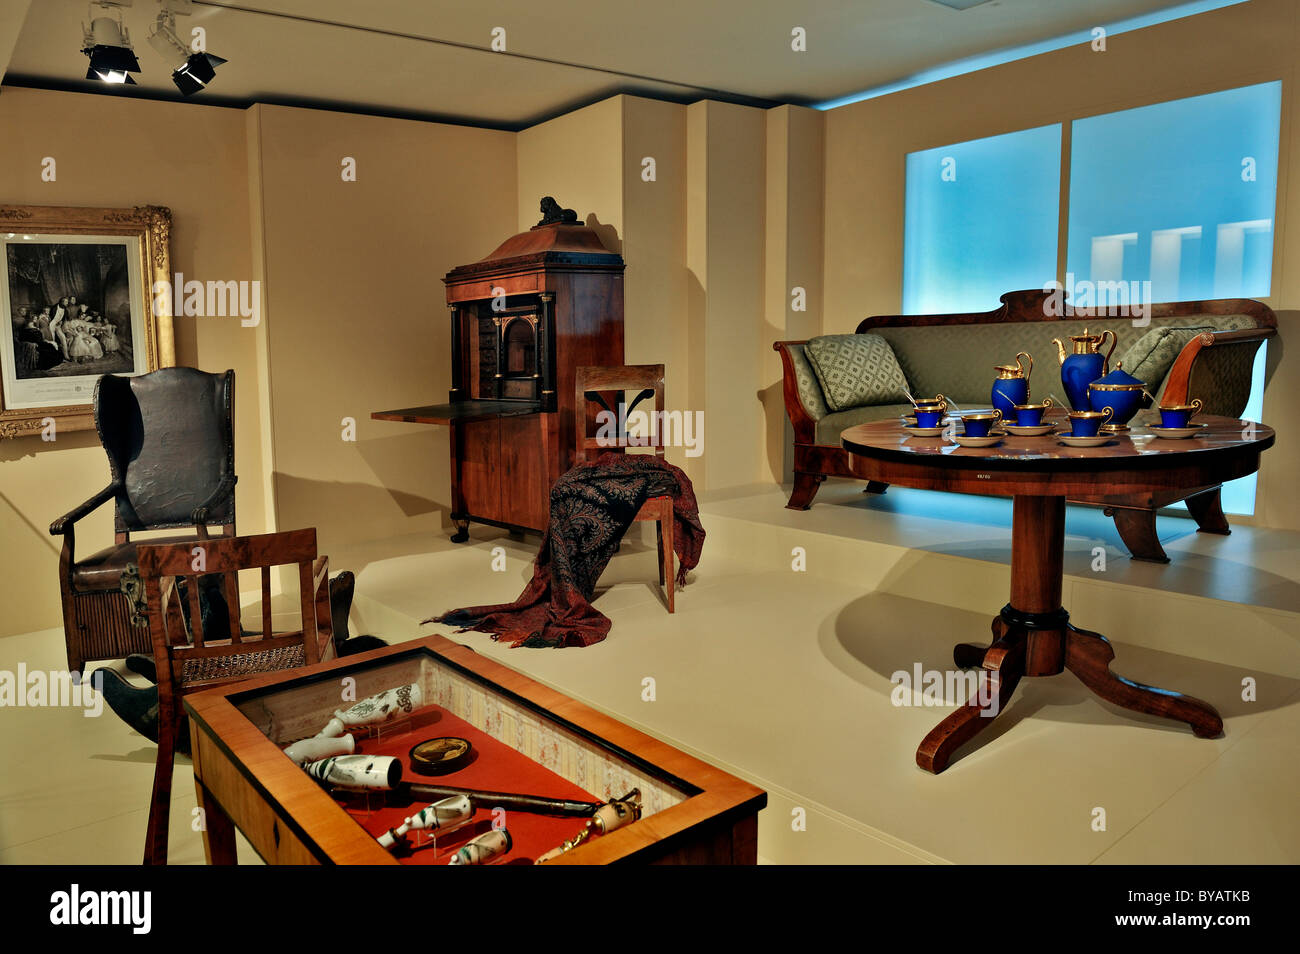 Rooms at the Typisch Muenchen exhibition, Munich City Museum, Stadtmuseum, Munich, Bavaria, Germany, Europe - Stock Image